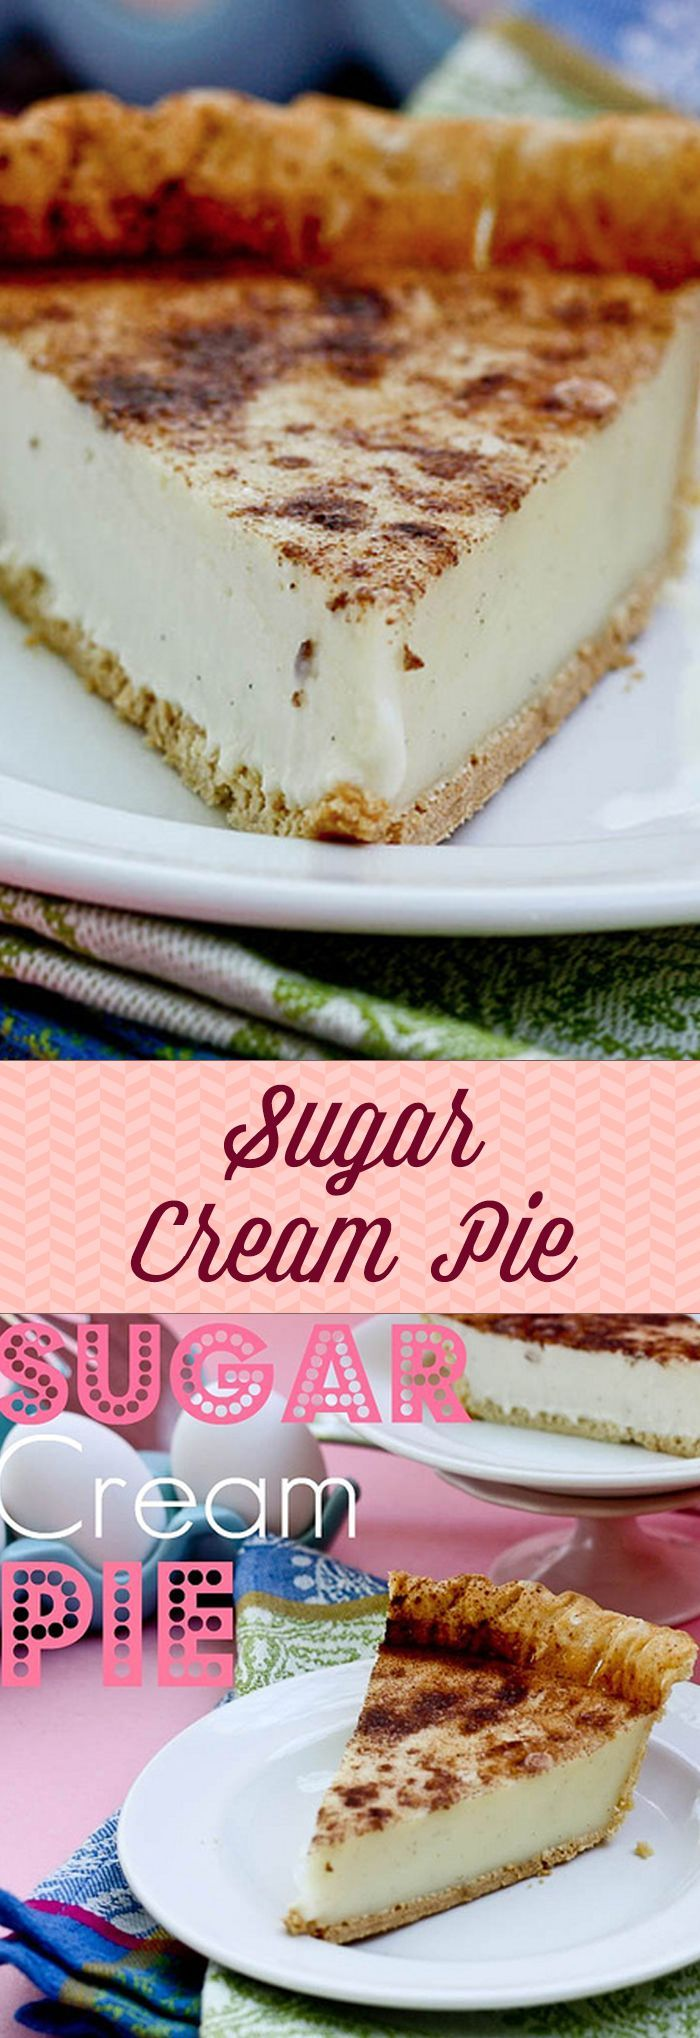 Sugar Cream Pie -- this pie is SO good and cuts like a dream!! Love the crackly cinnamon top. #sugarcreampie